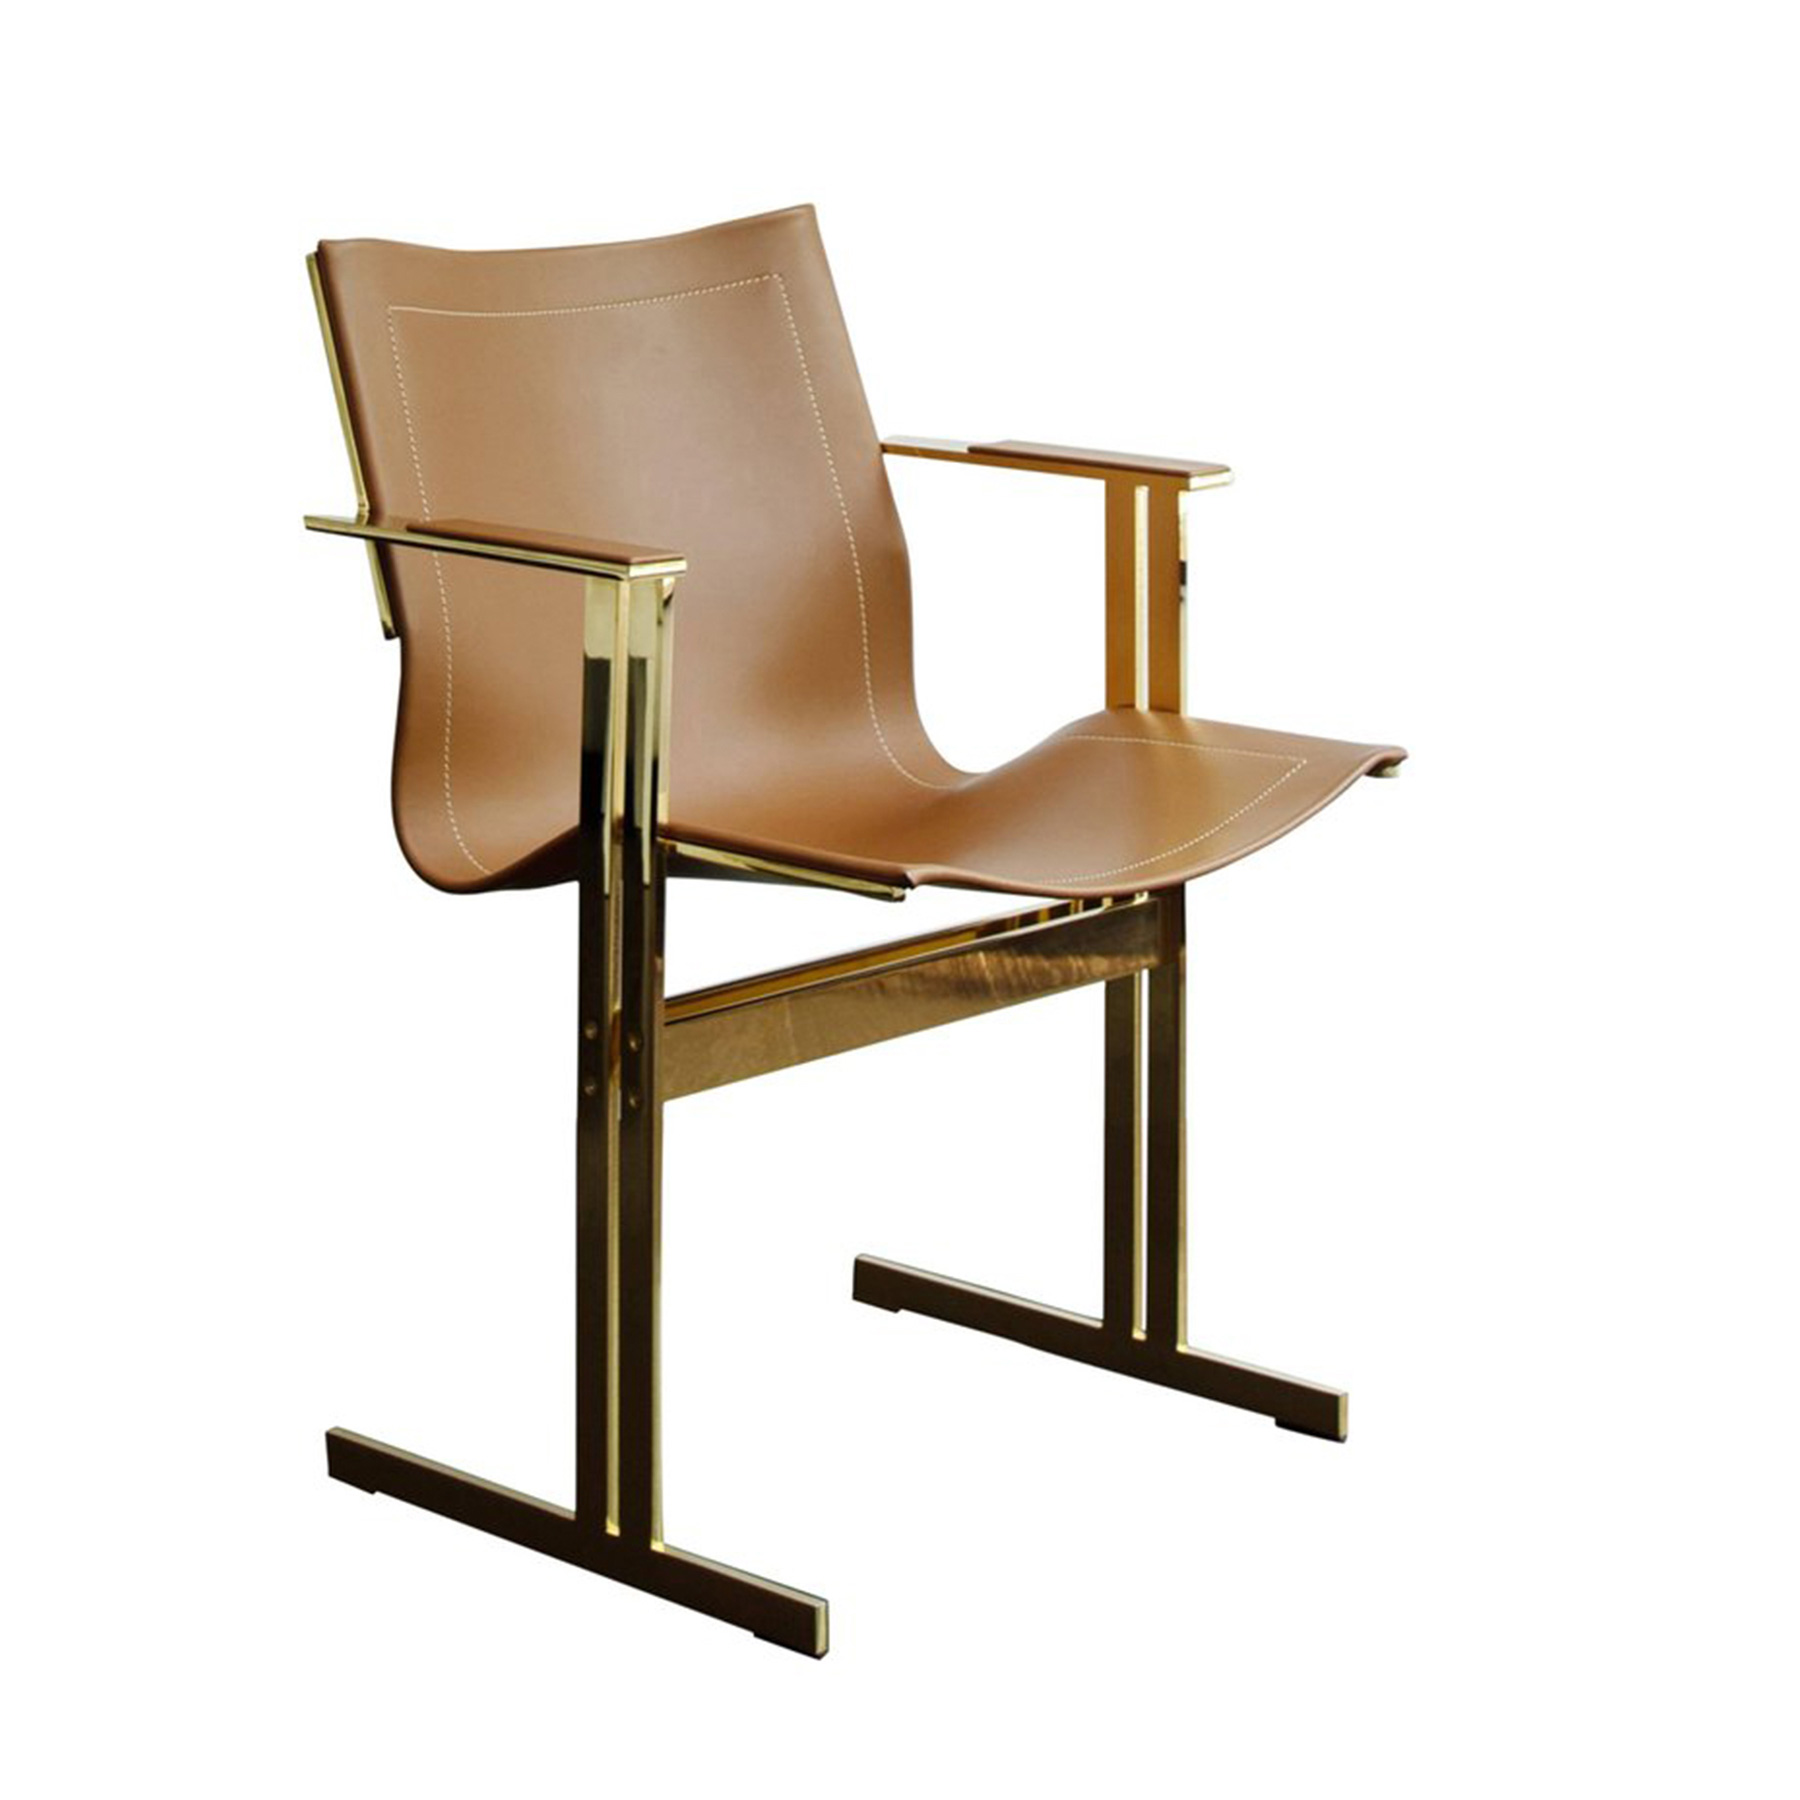 KOLB CHAIR